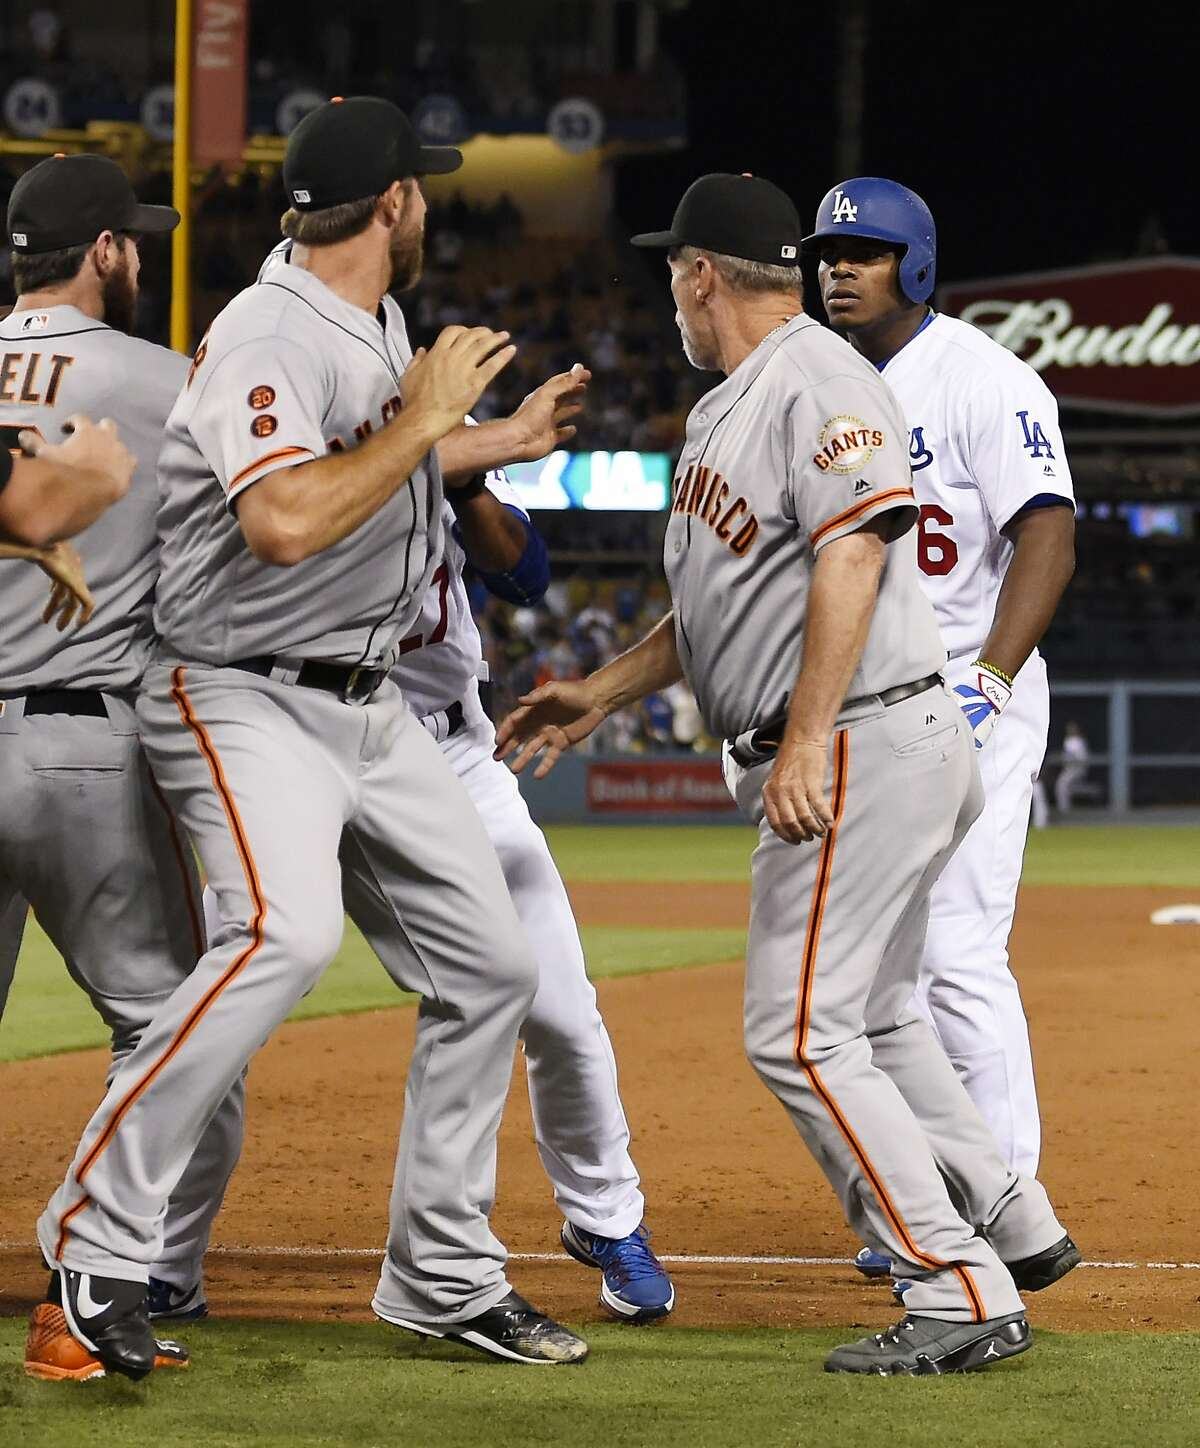 San Francisco Giants starting pitcher Madison Bumgarner, second from left, and Los Angeles Dodgers' Yasiel Puig, right, argue as first base coach Bill Hayes stands between them during a scuffle that emptied both benches after Puig was thrown out at first by Bumgarner during the seventh inning of a baseball game, Monday, Sept. 19, 2016, in Los Angeles. (AP Photo/Mark J. Terrill)